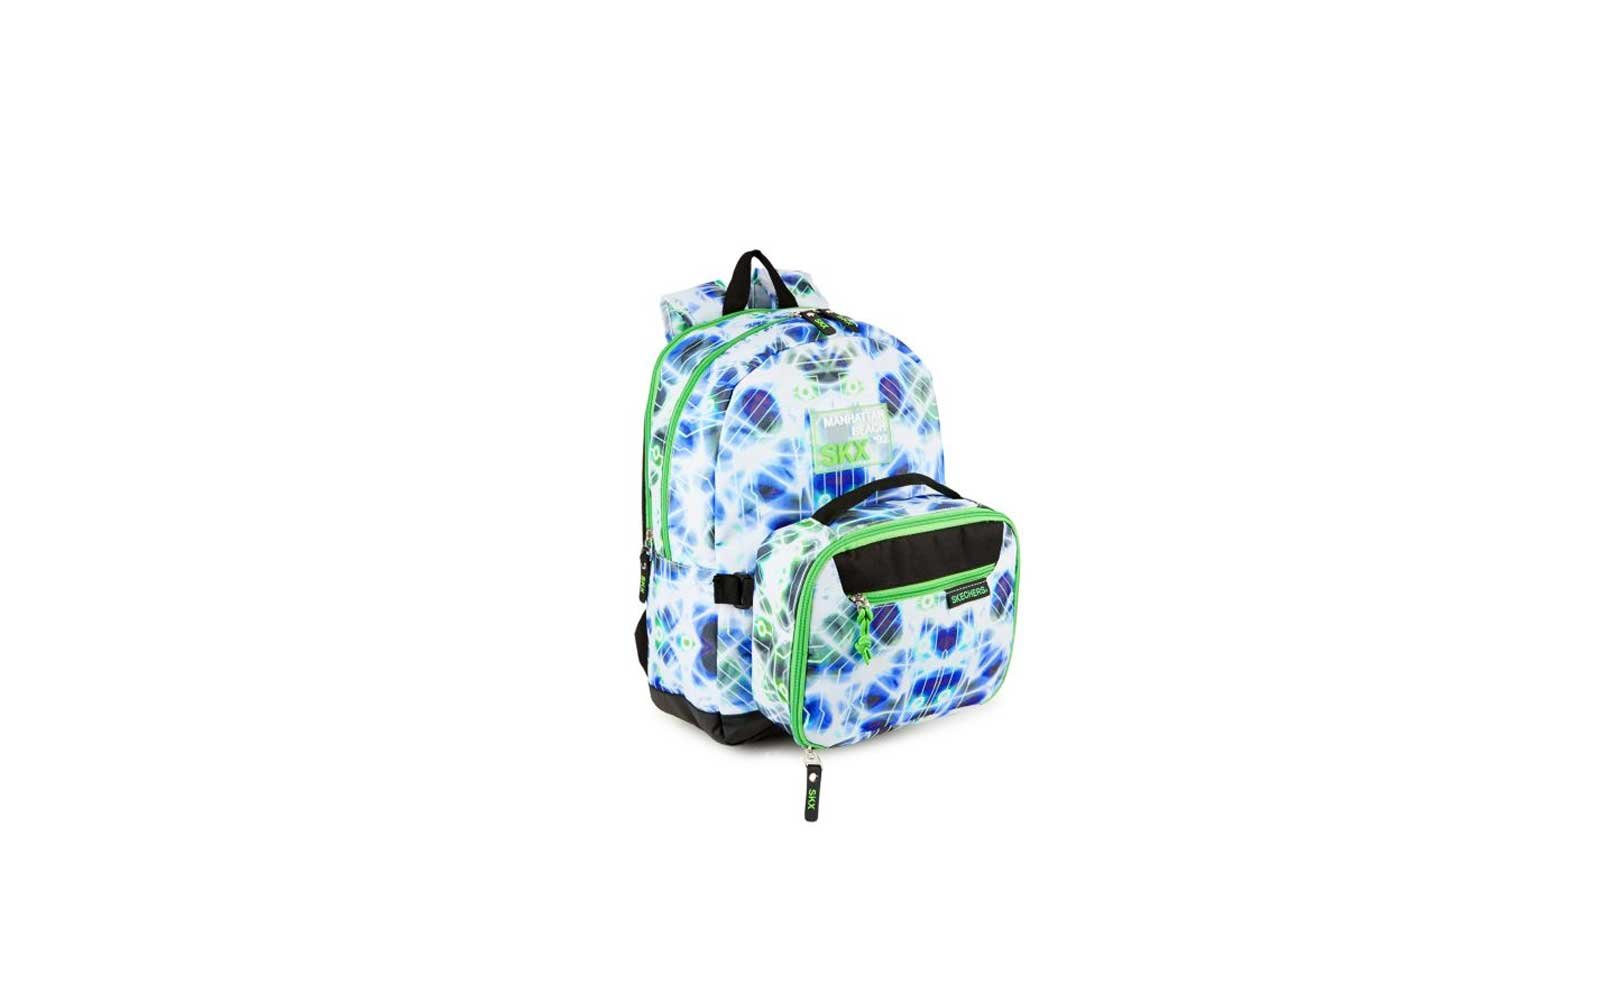 Skechers Graphic Backpack